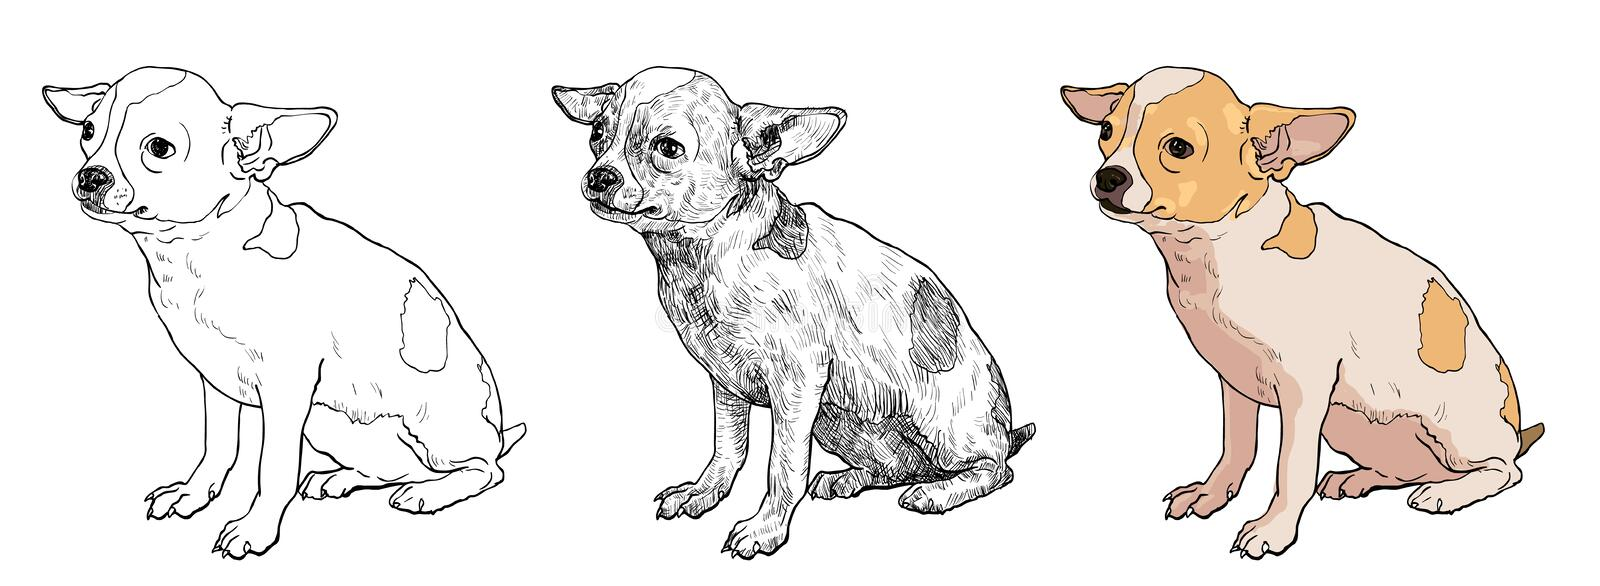 Chihuahua. The vector of chihuahua on sitting pose stock illustration